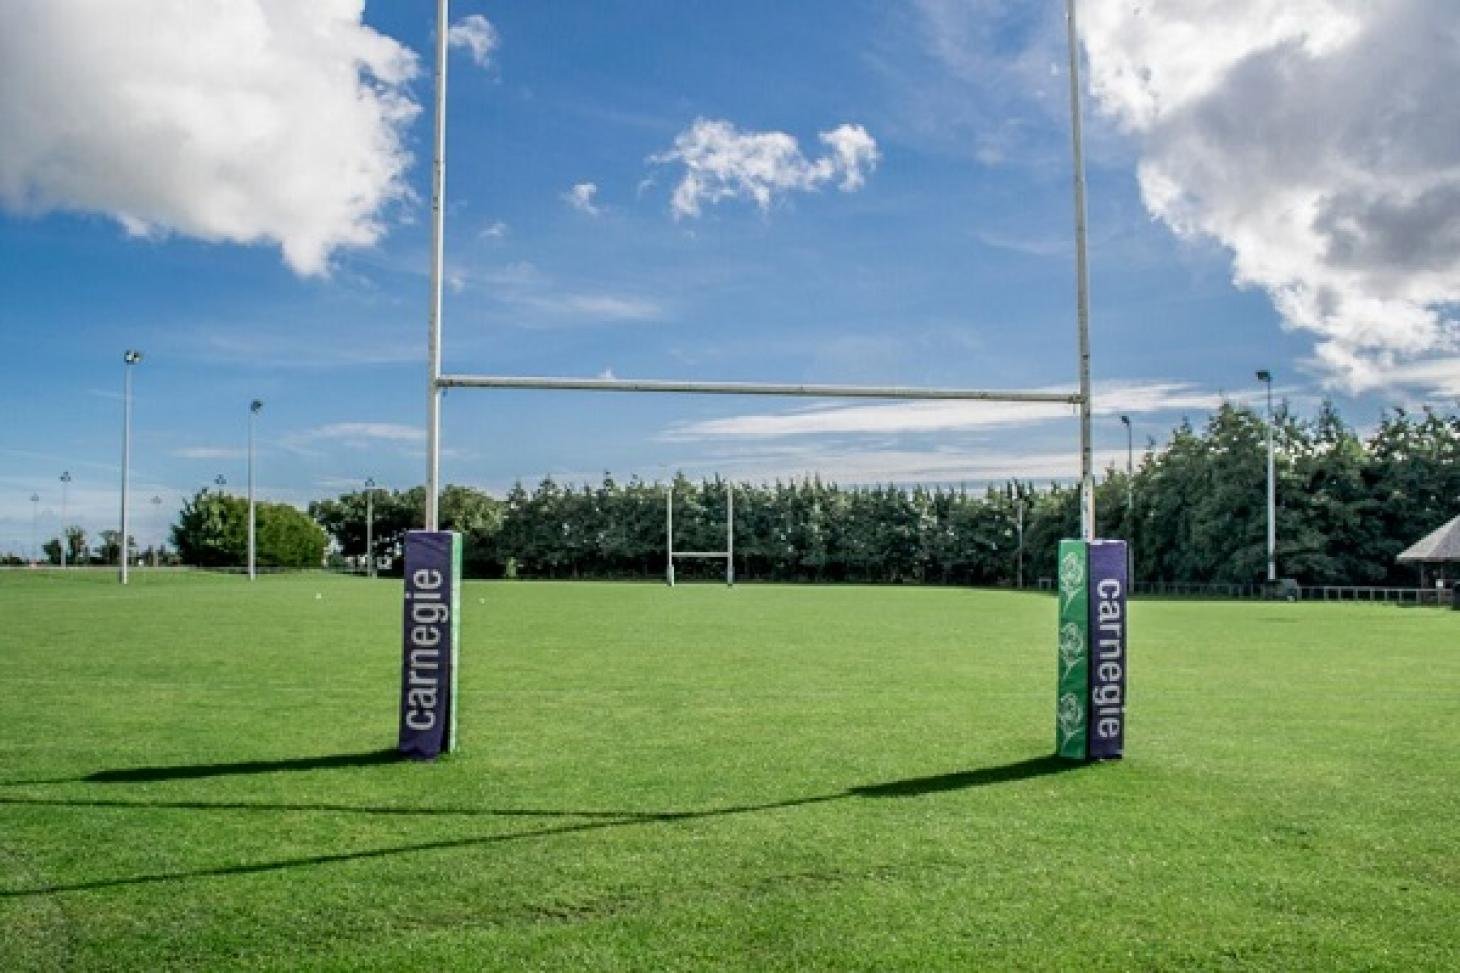 ALSAA Union | Grass rugby pitch